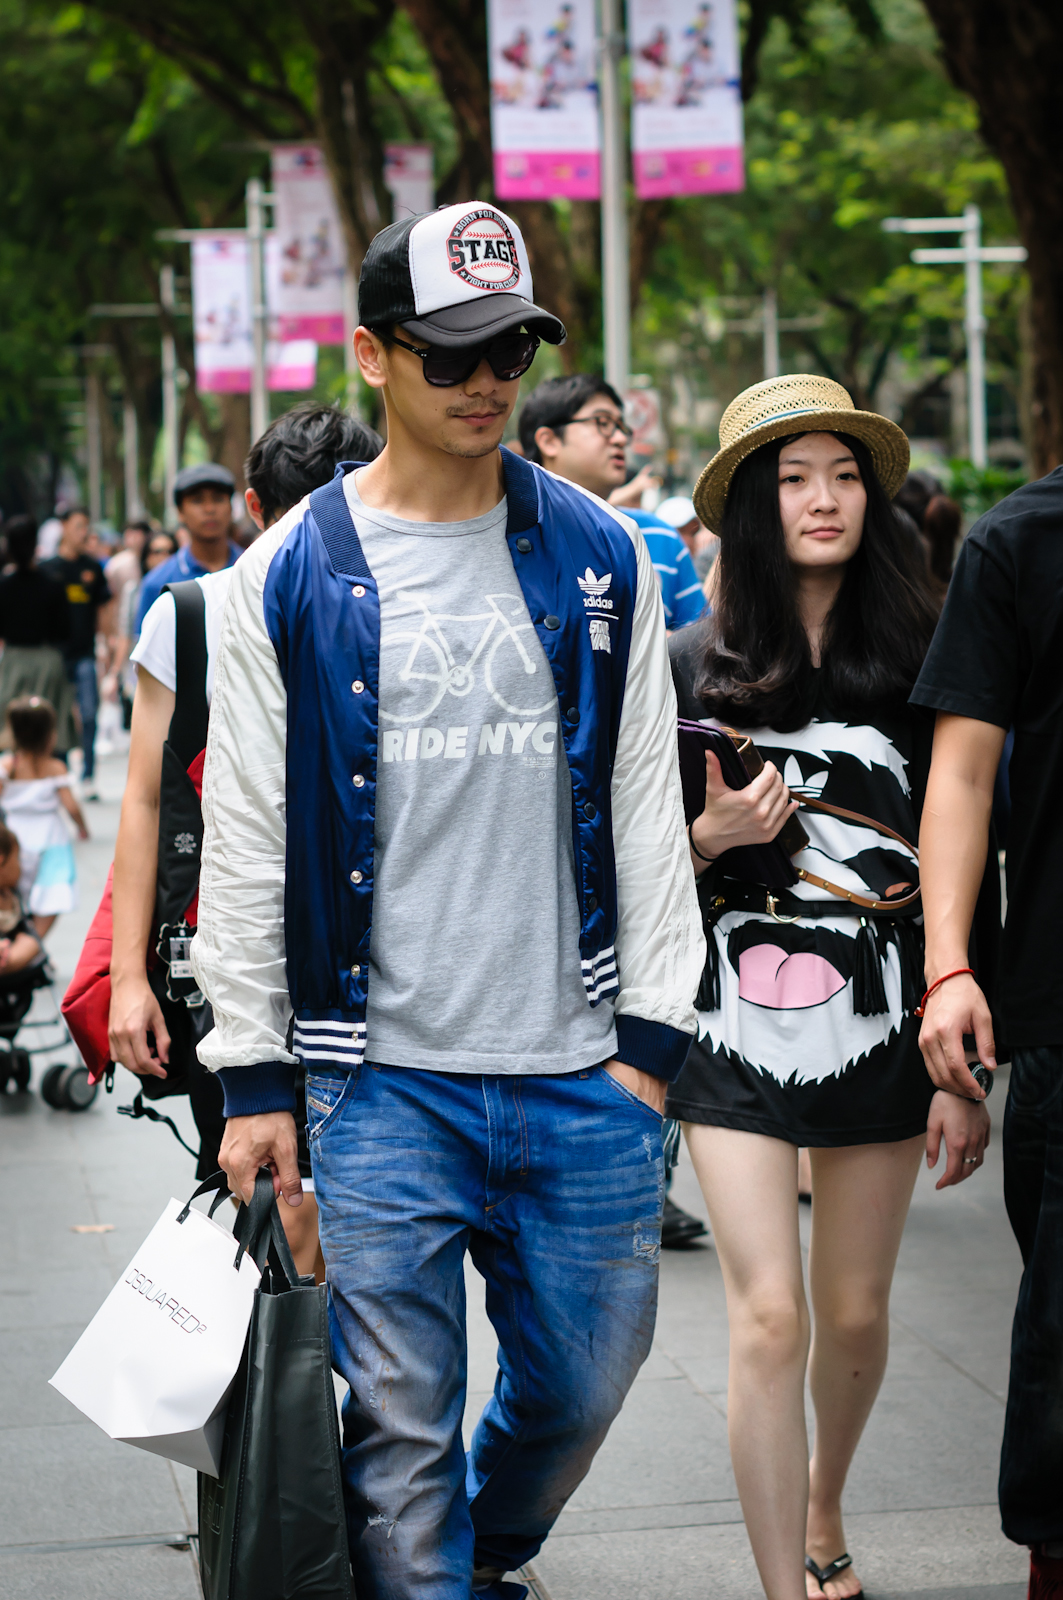 Street photography - Man in cap and woman in hat